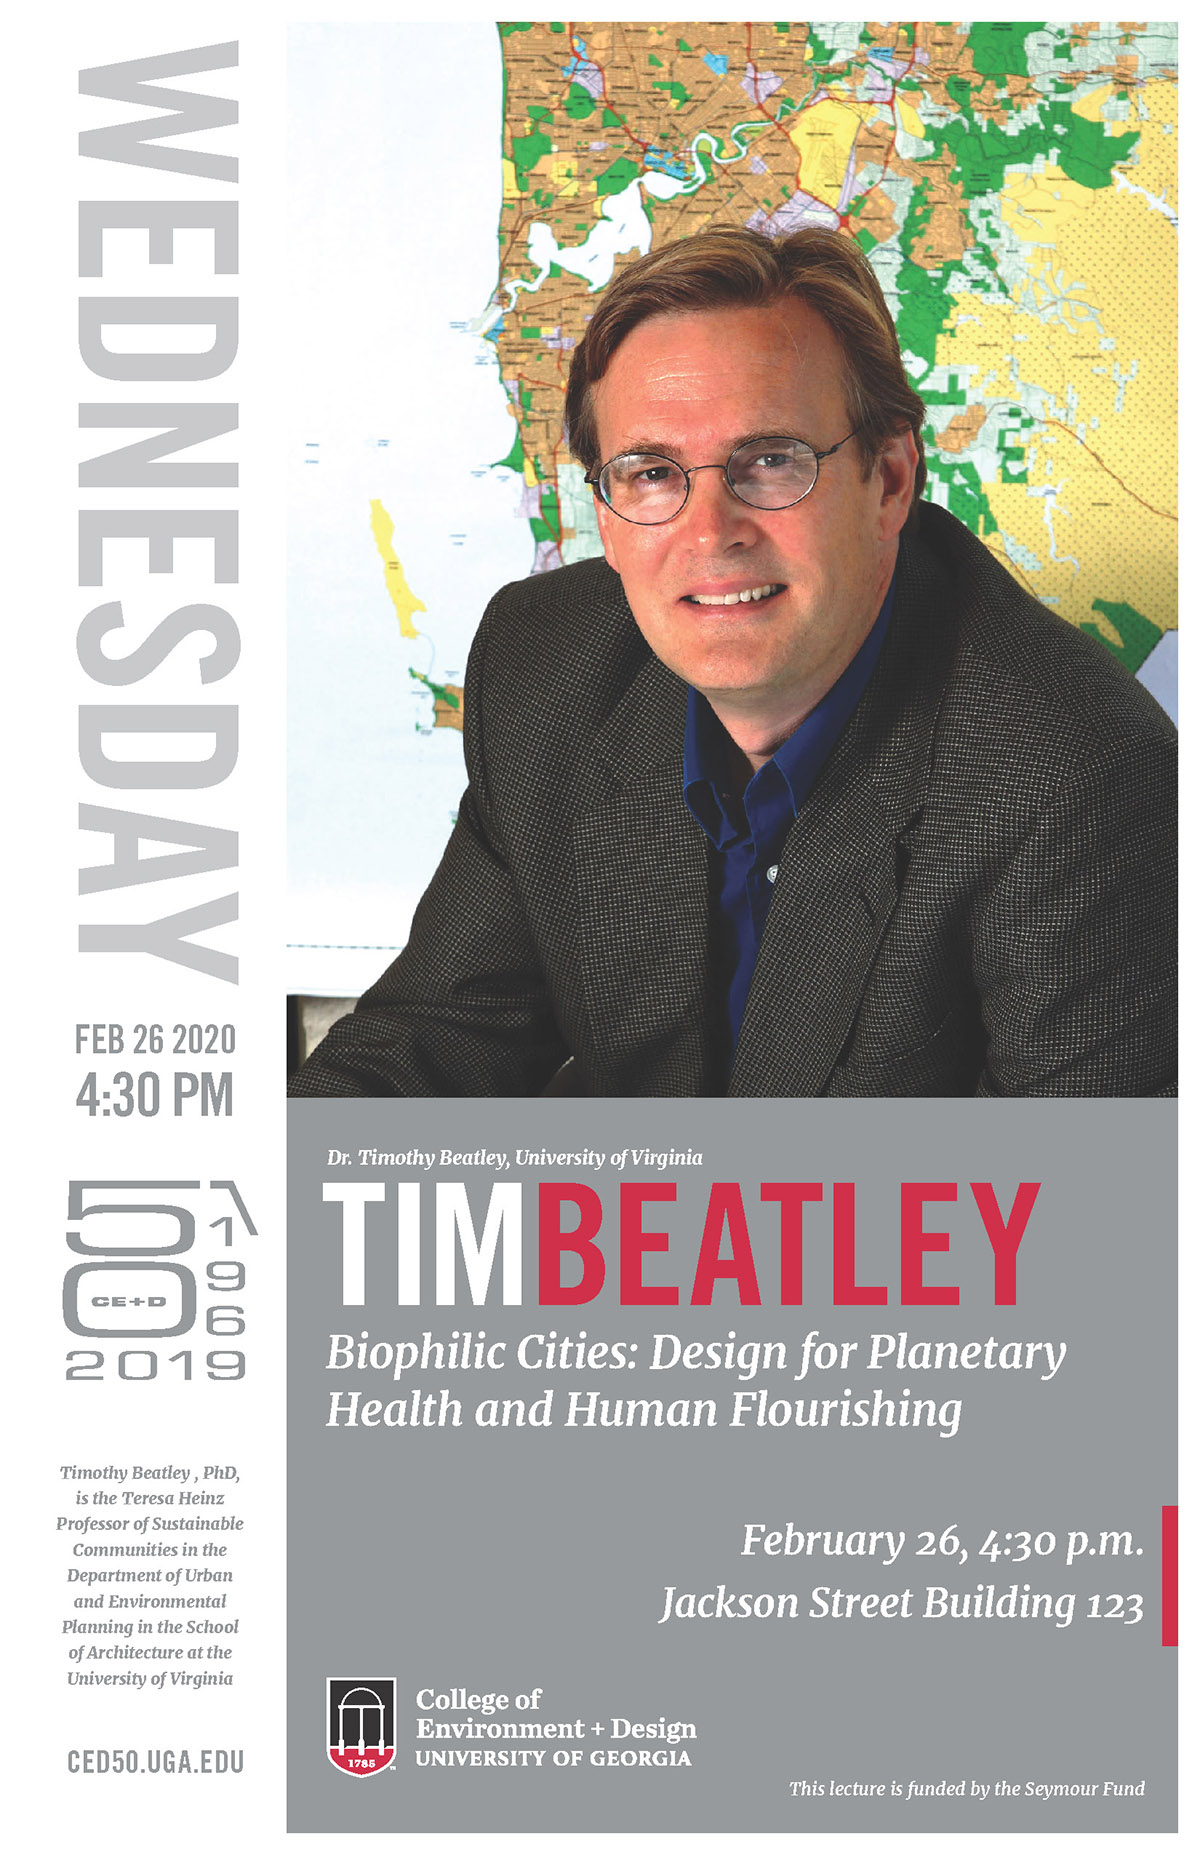 Beatley lecture poster